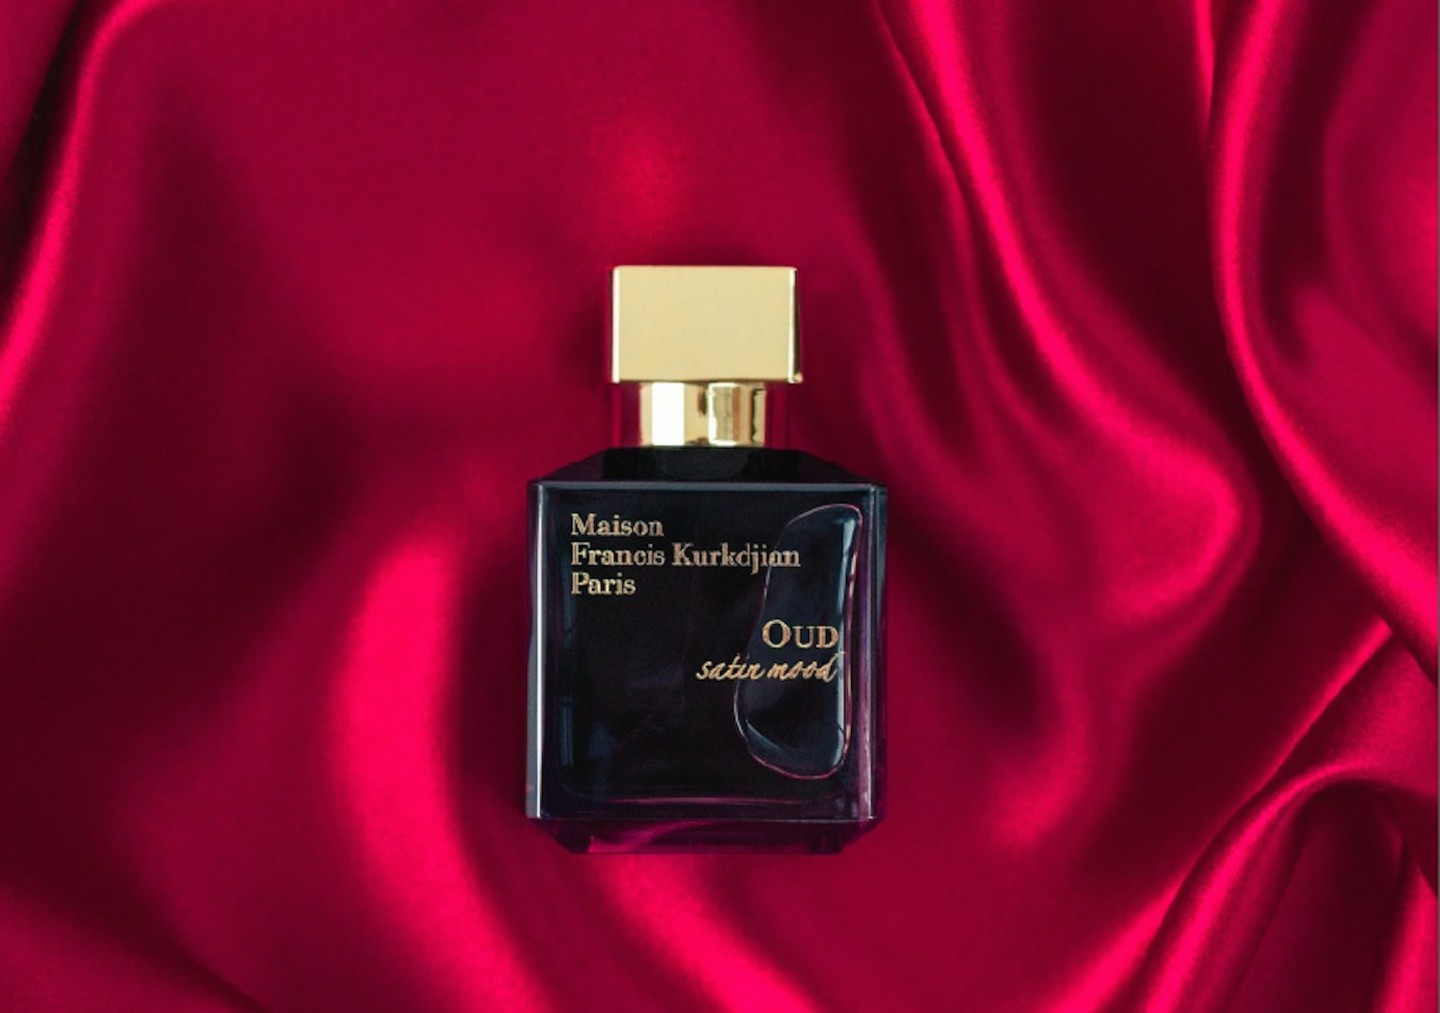 Oud Satin Mood Maison Francis Kurkdjian for women and men ipek kumaş üzerinde.jpg